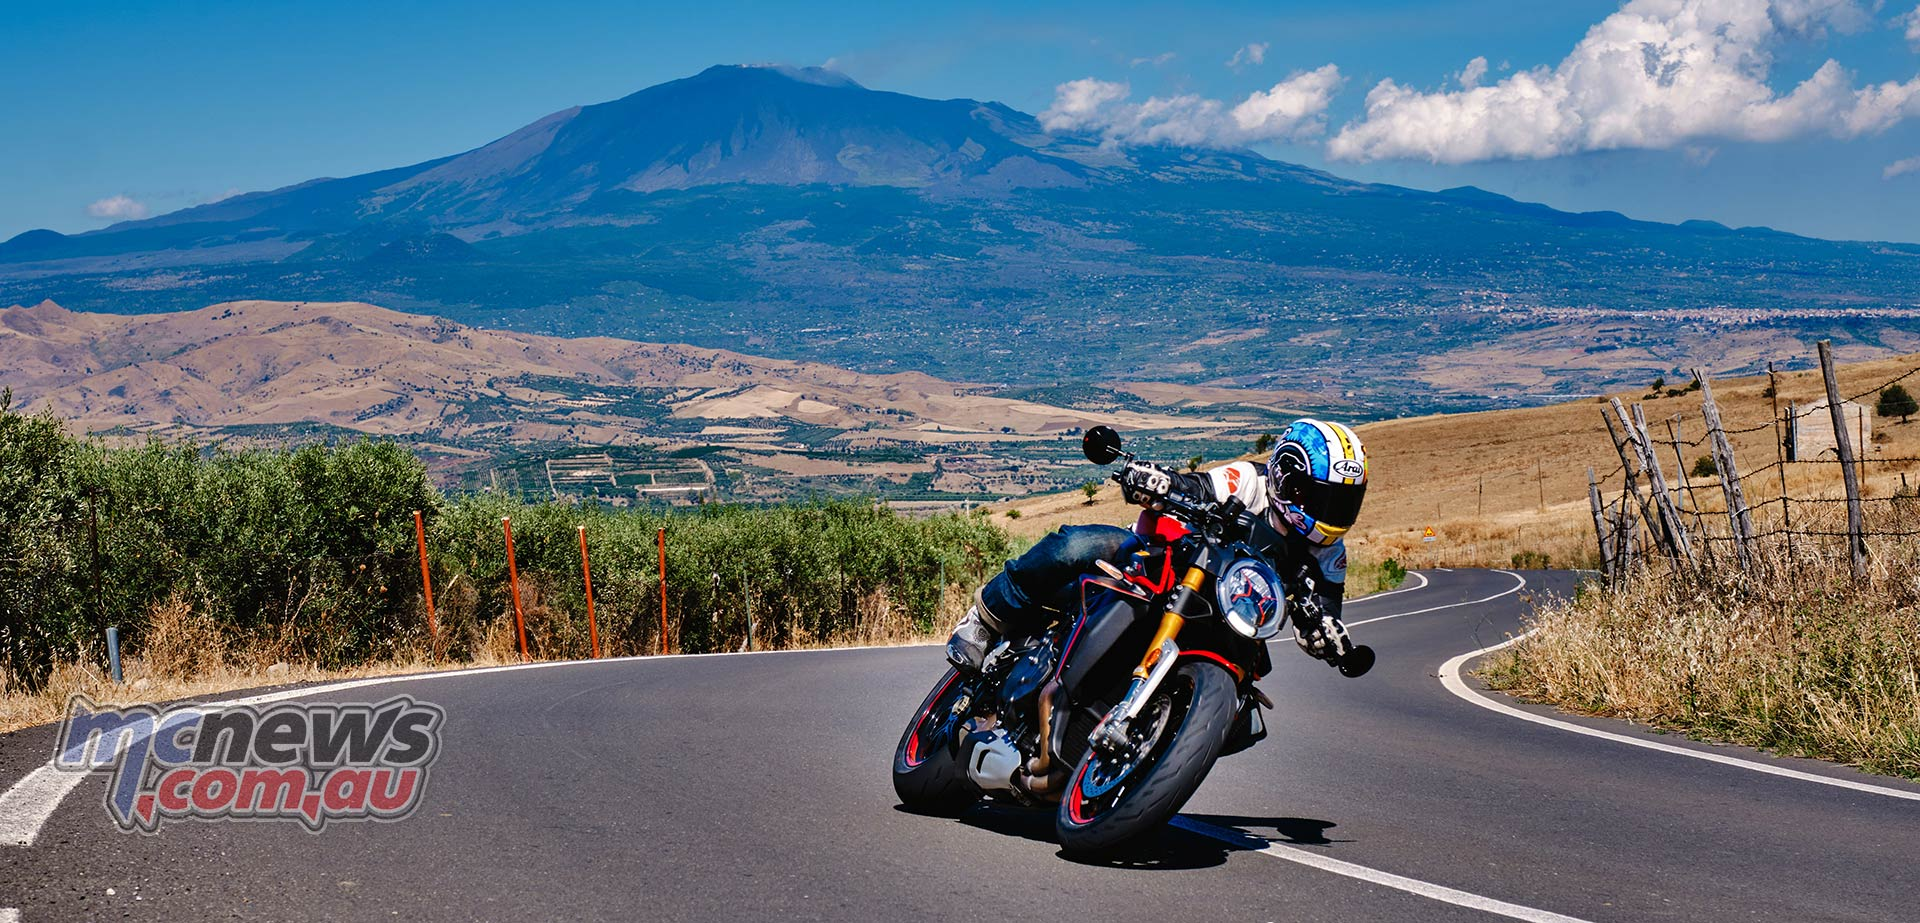 Mount Etna provides a stunning backdrop to the equally stunning MV Agusta Brutale 1000 RR